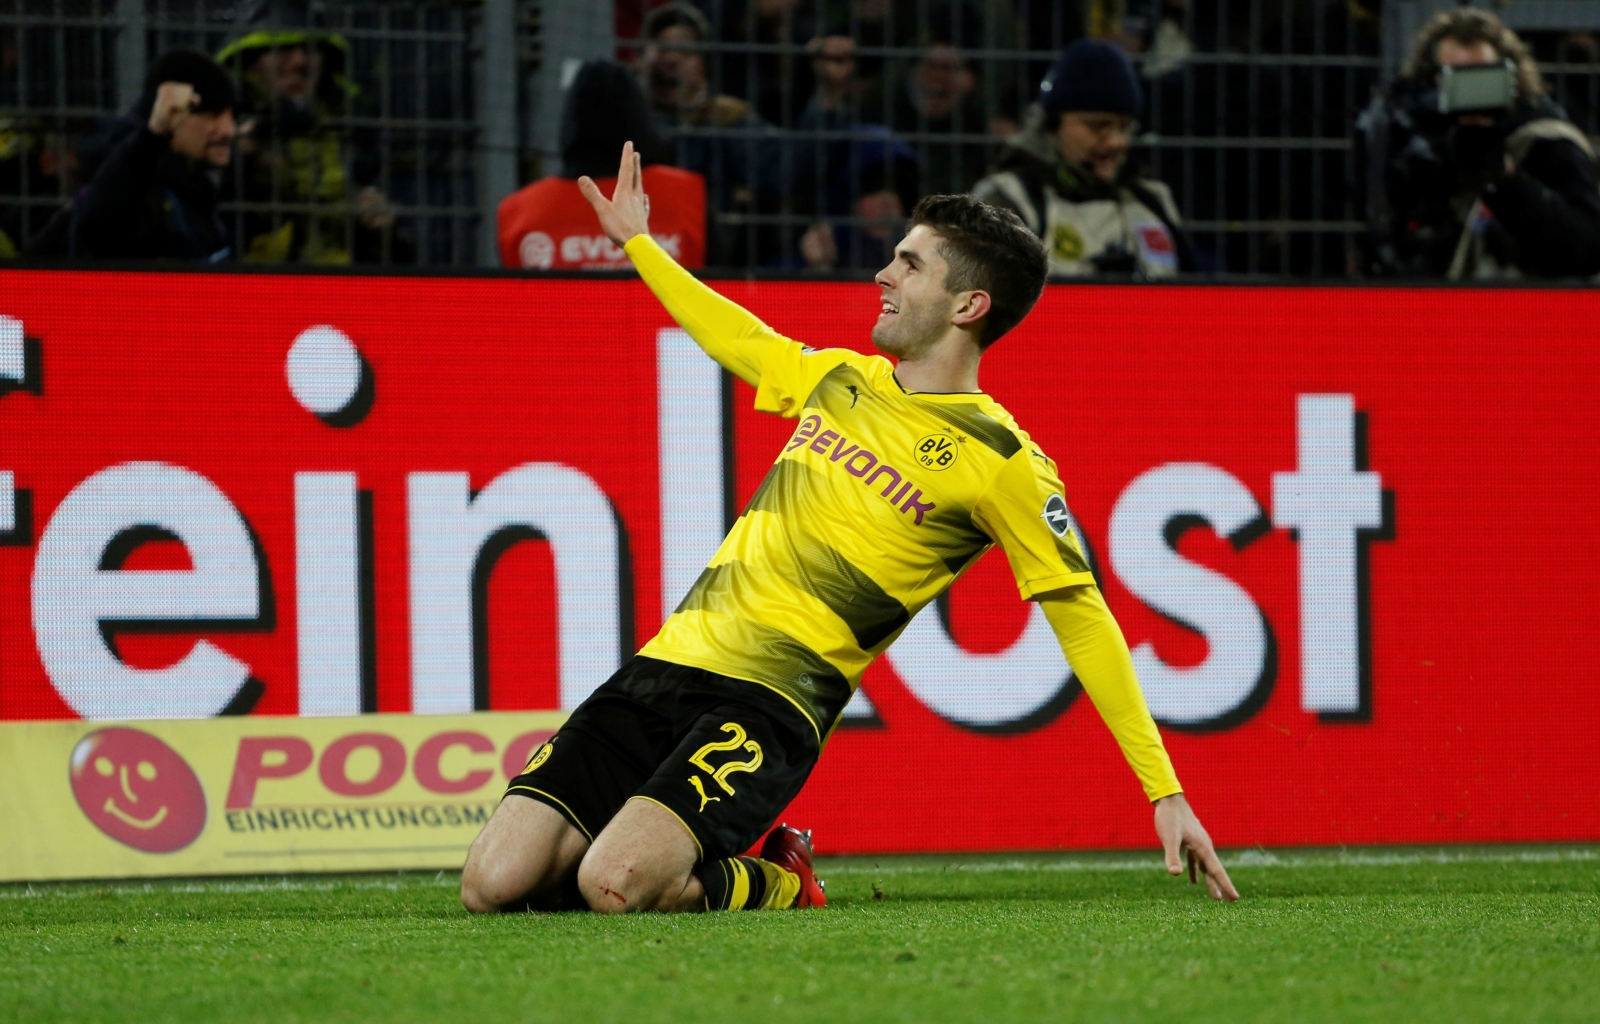 Bayern Munich wants USMNT Christian Pulisic from Borussia Dortmund